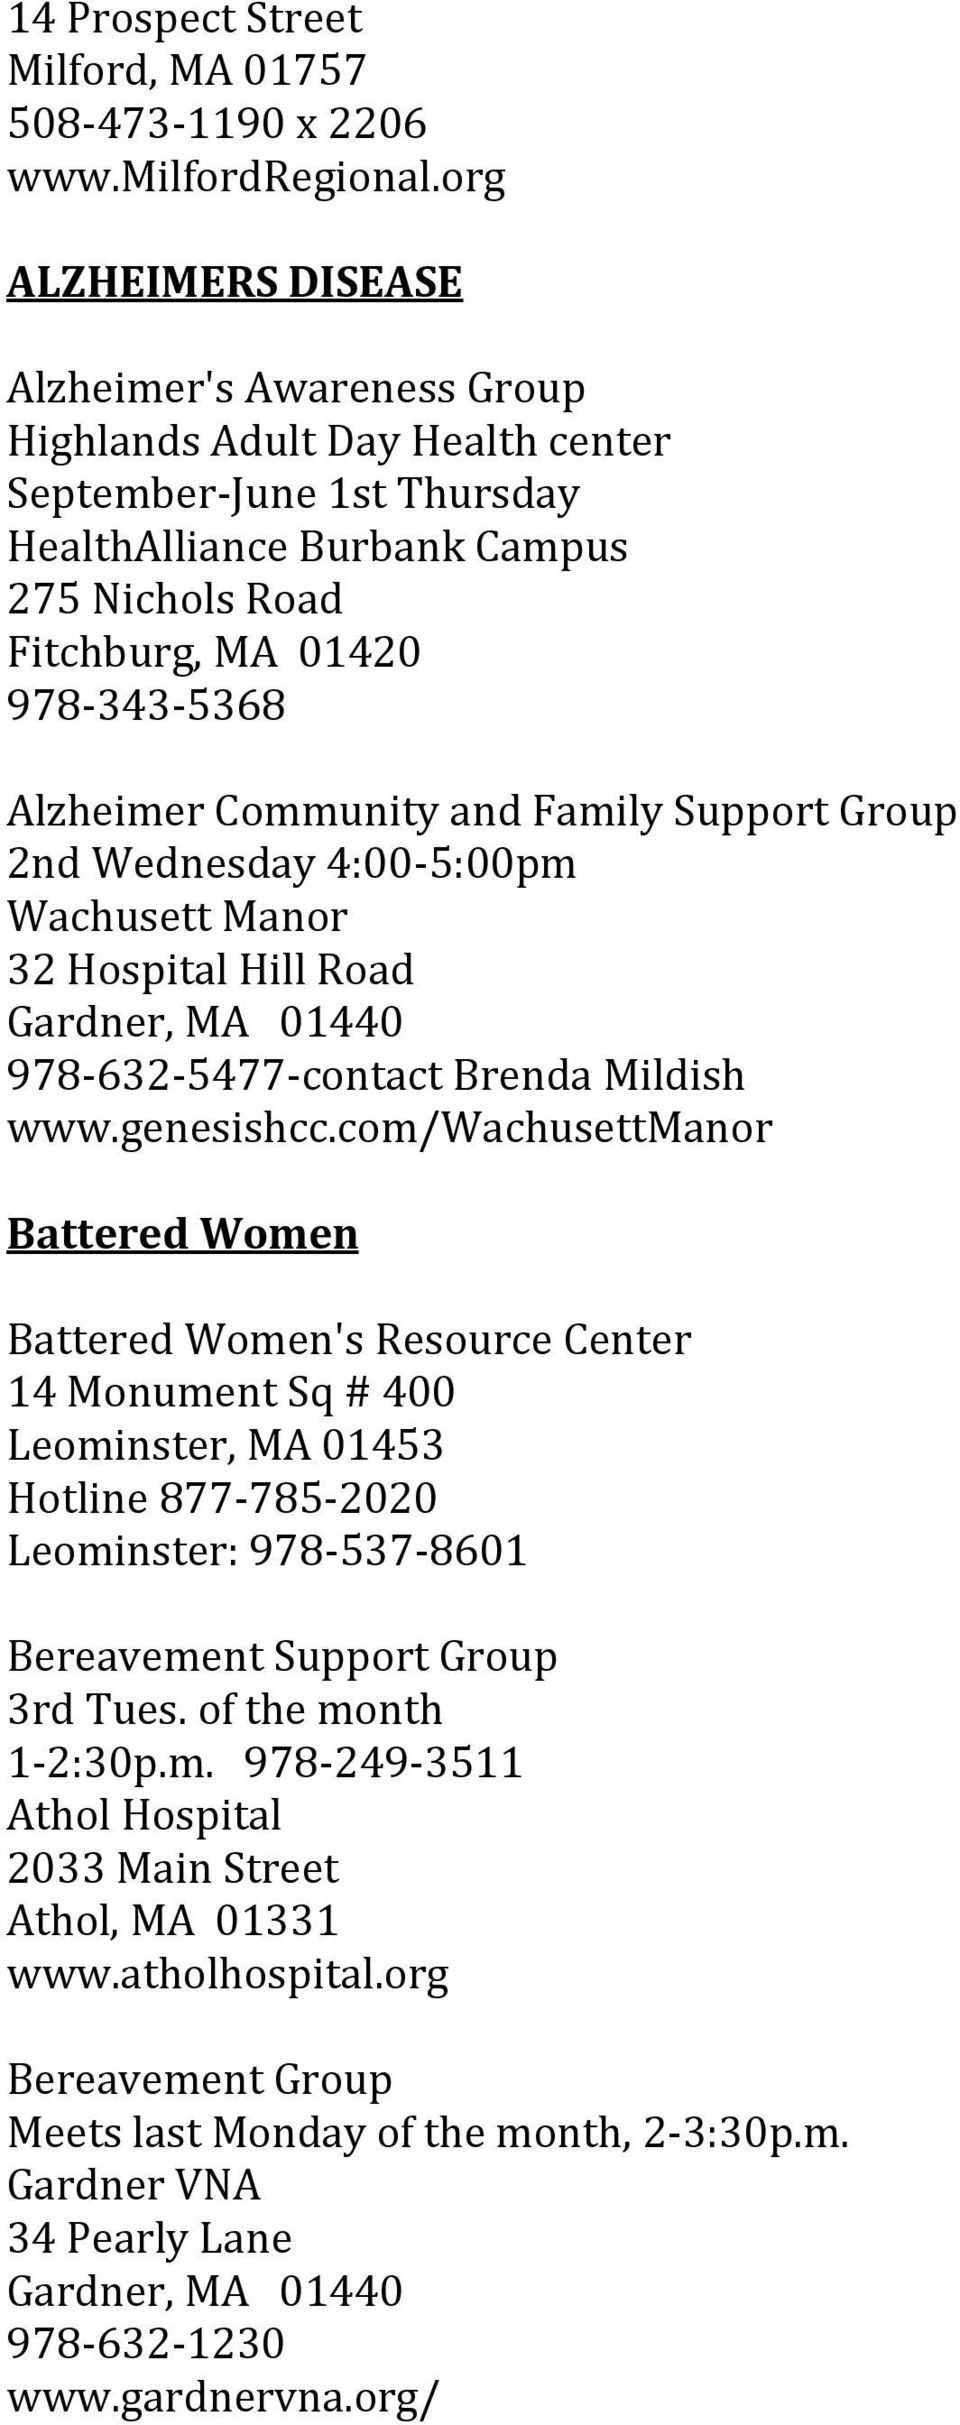 Family Support Group 2nd Wednesday 4:00-5:00pm Wachusett Manor 32 Hospital Hill Road 978-632-5477-contact Brenda Mildish www.genesishcc.